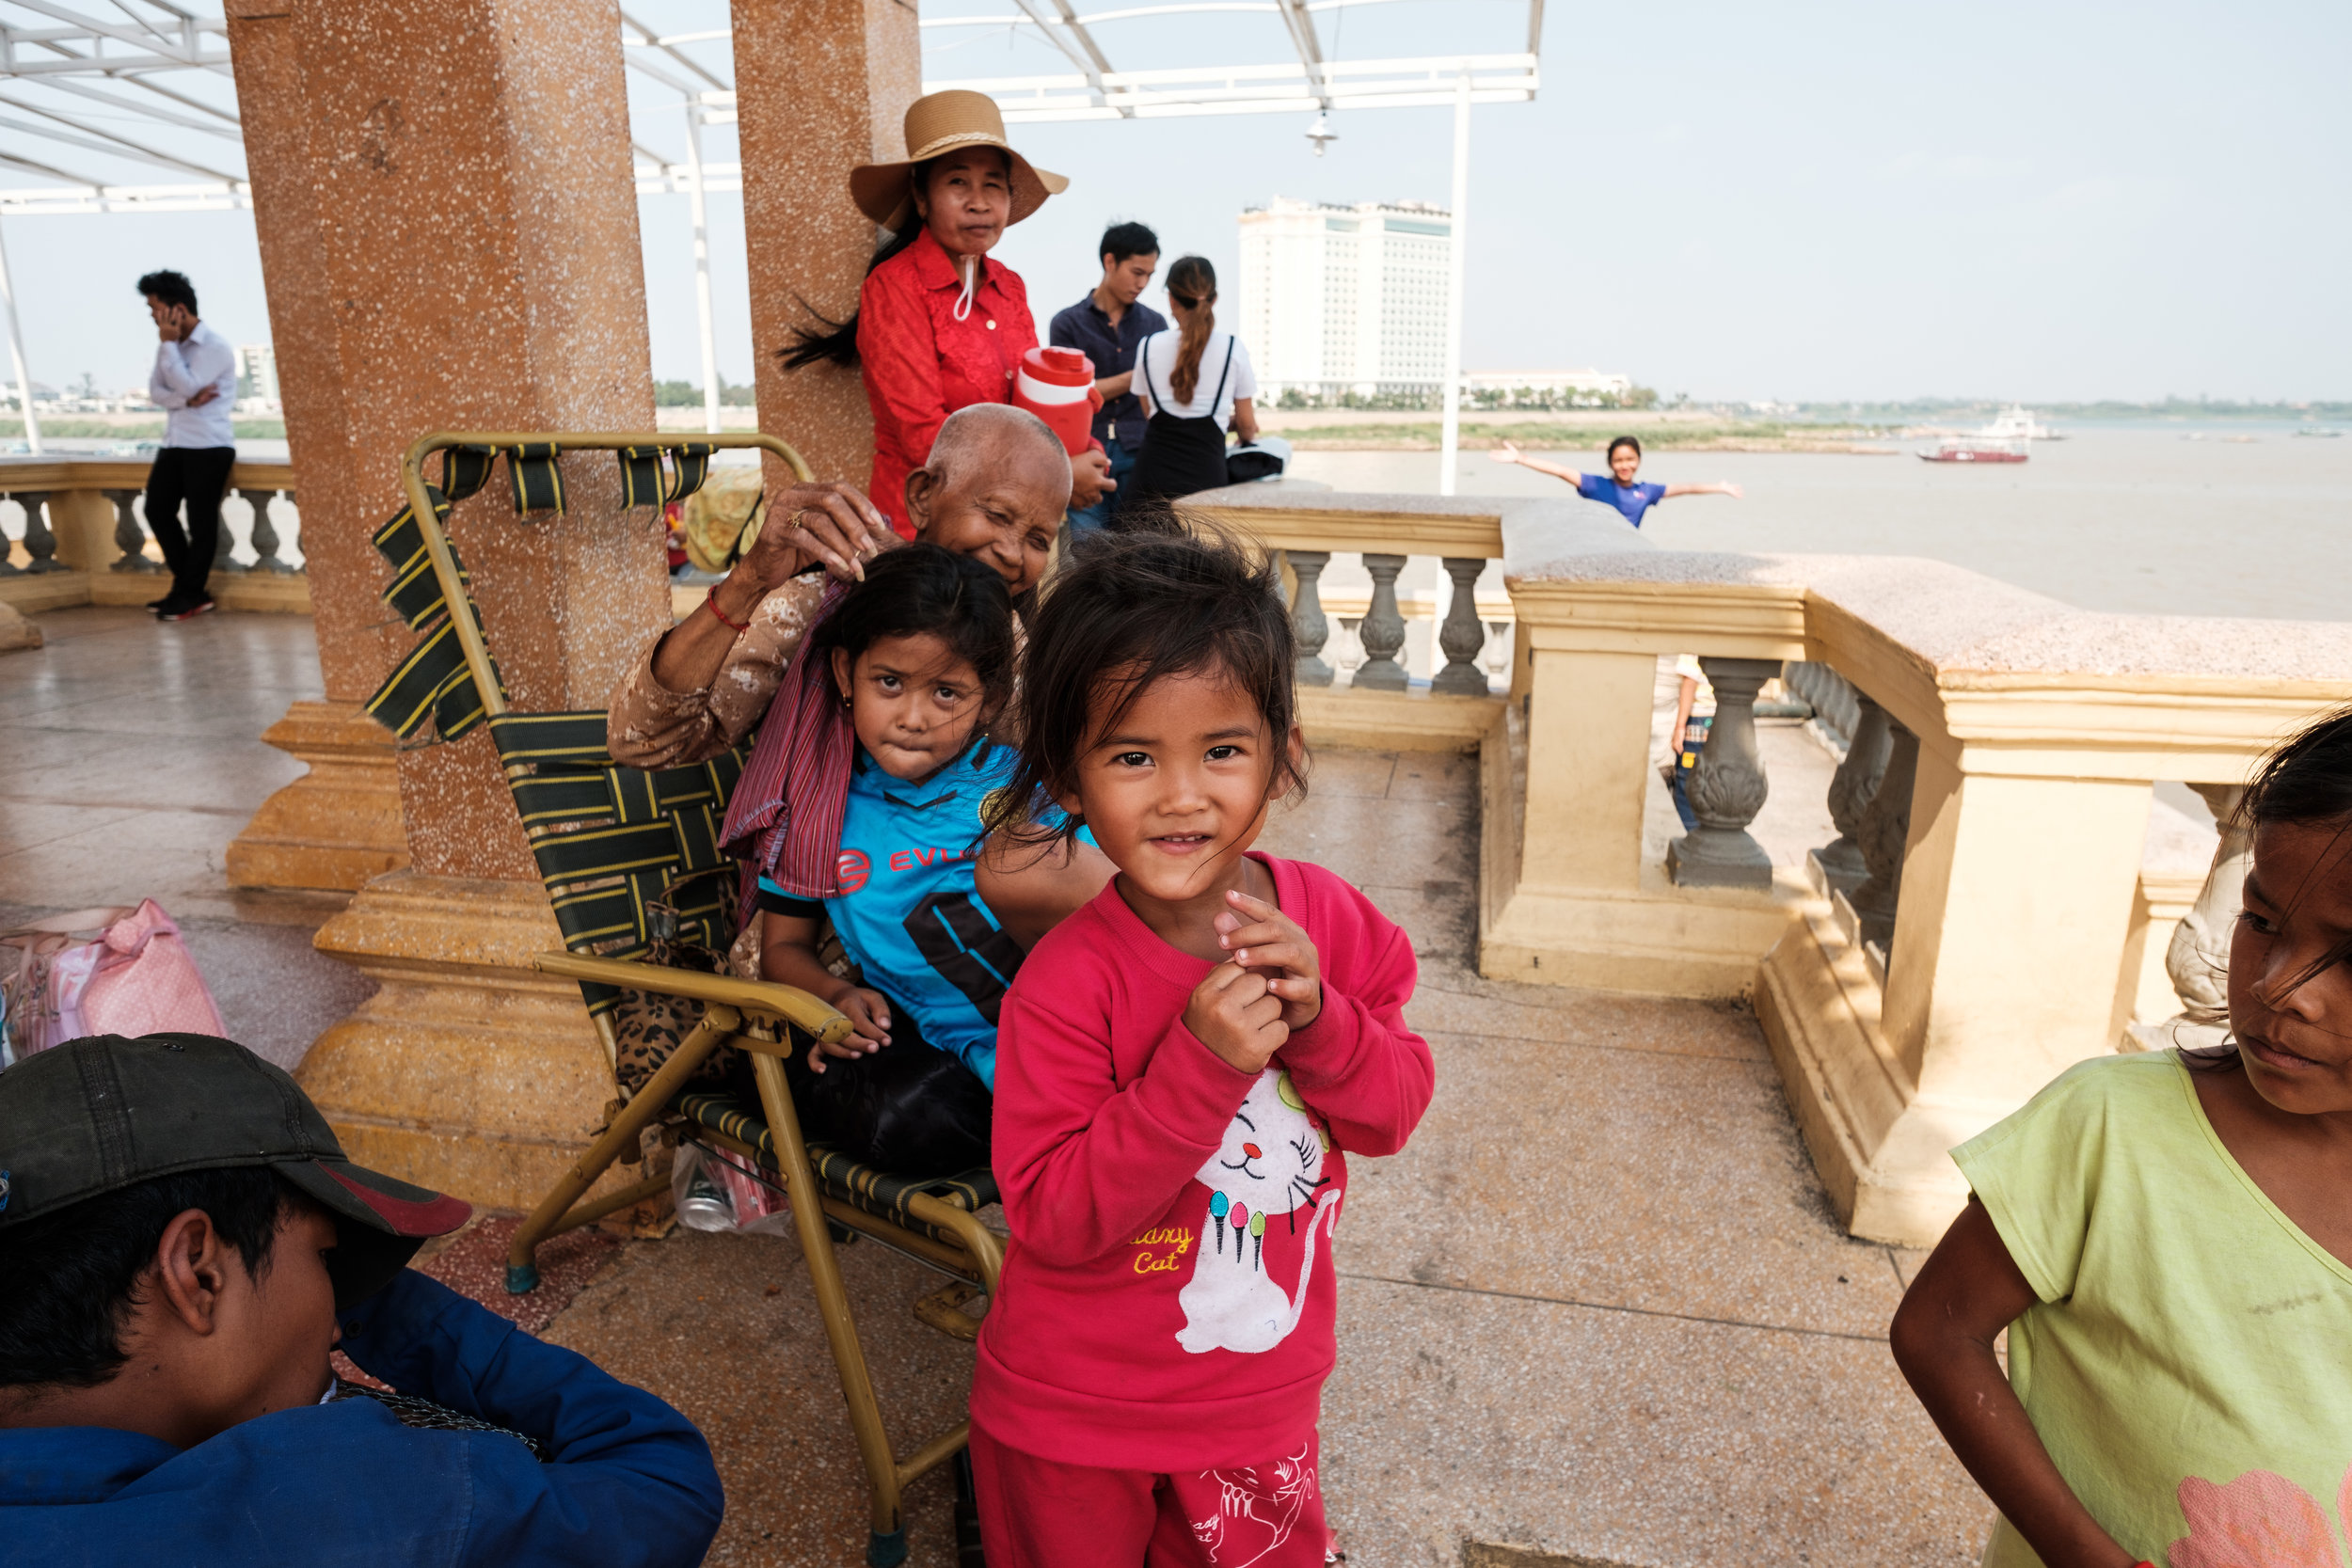 A family gathering in Phnom Penh Cambodia